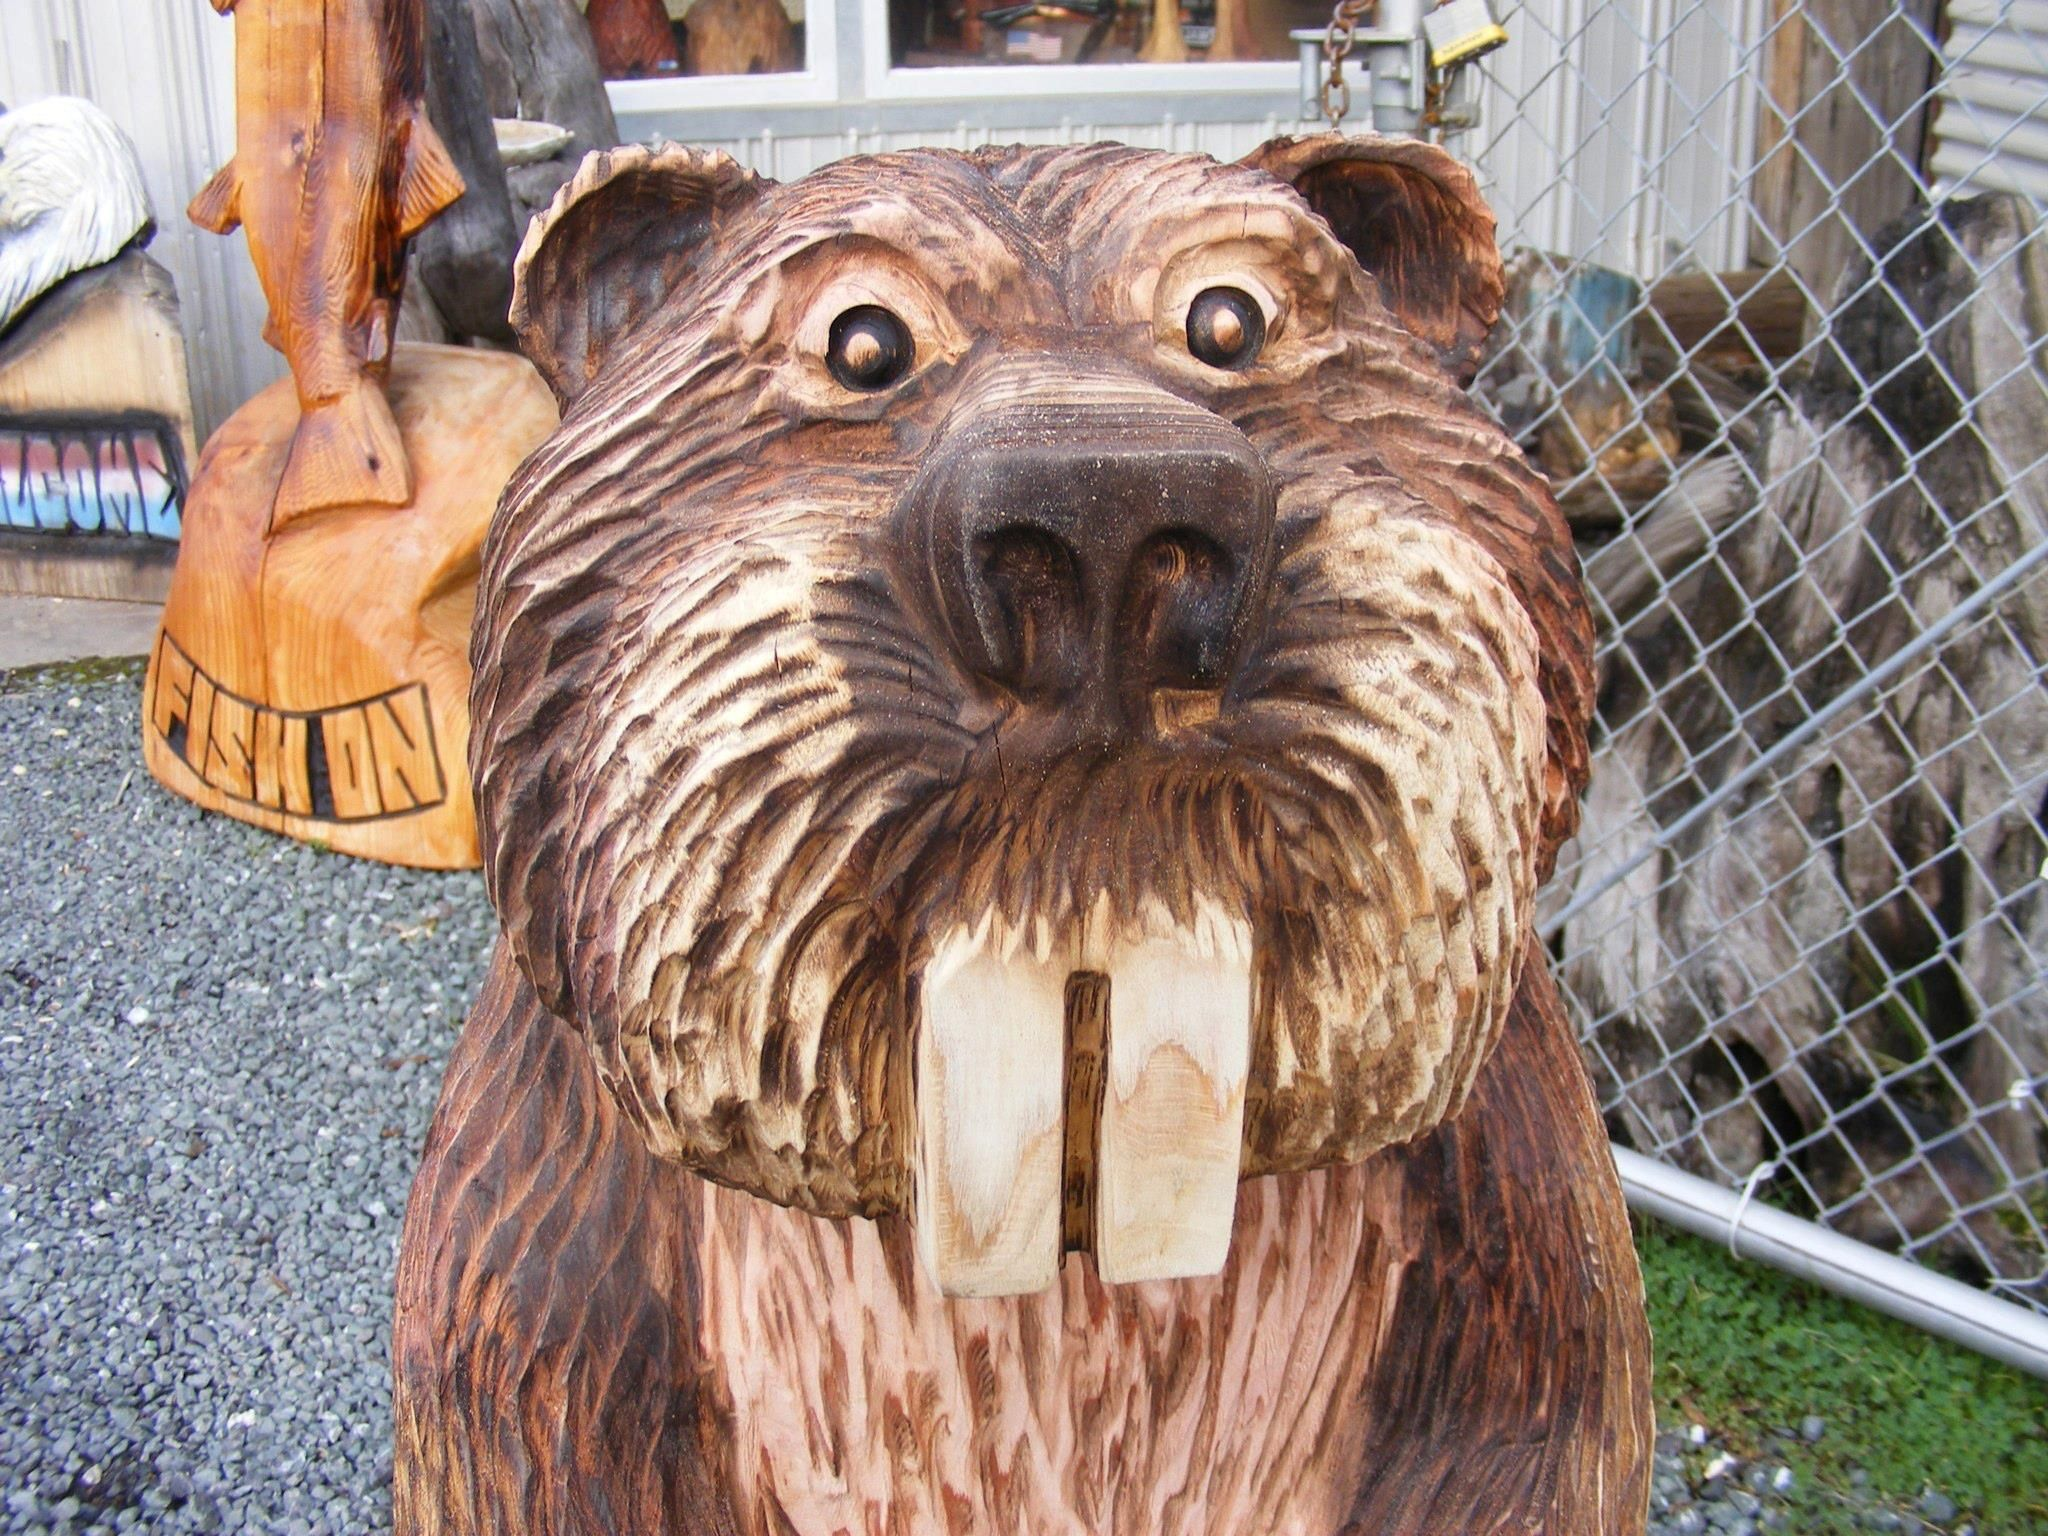 Mark colp captured this great expression on beaver